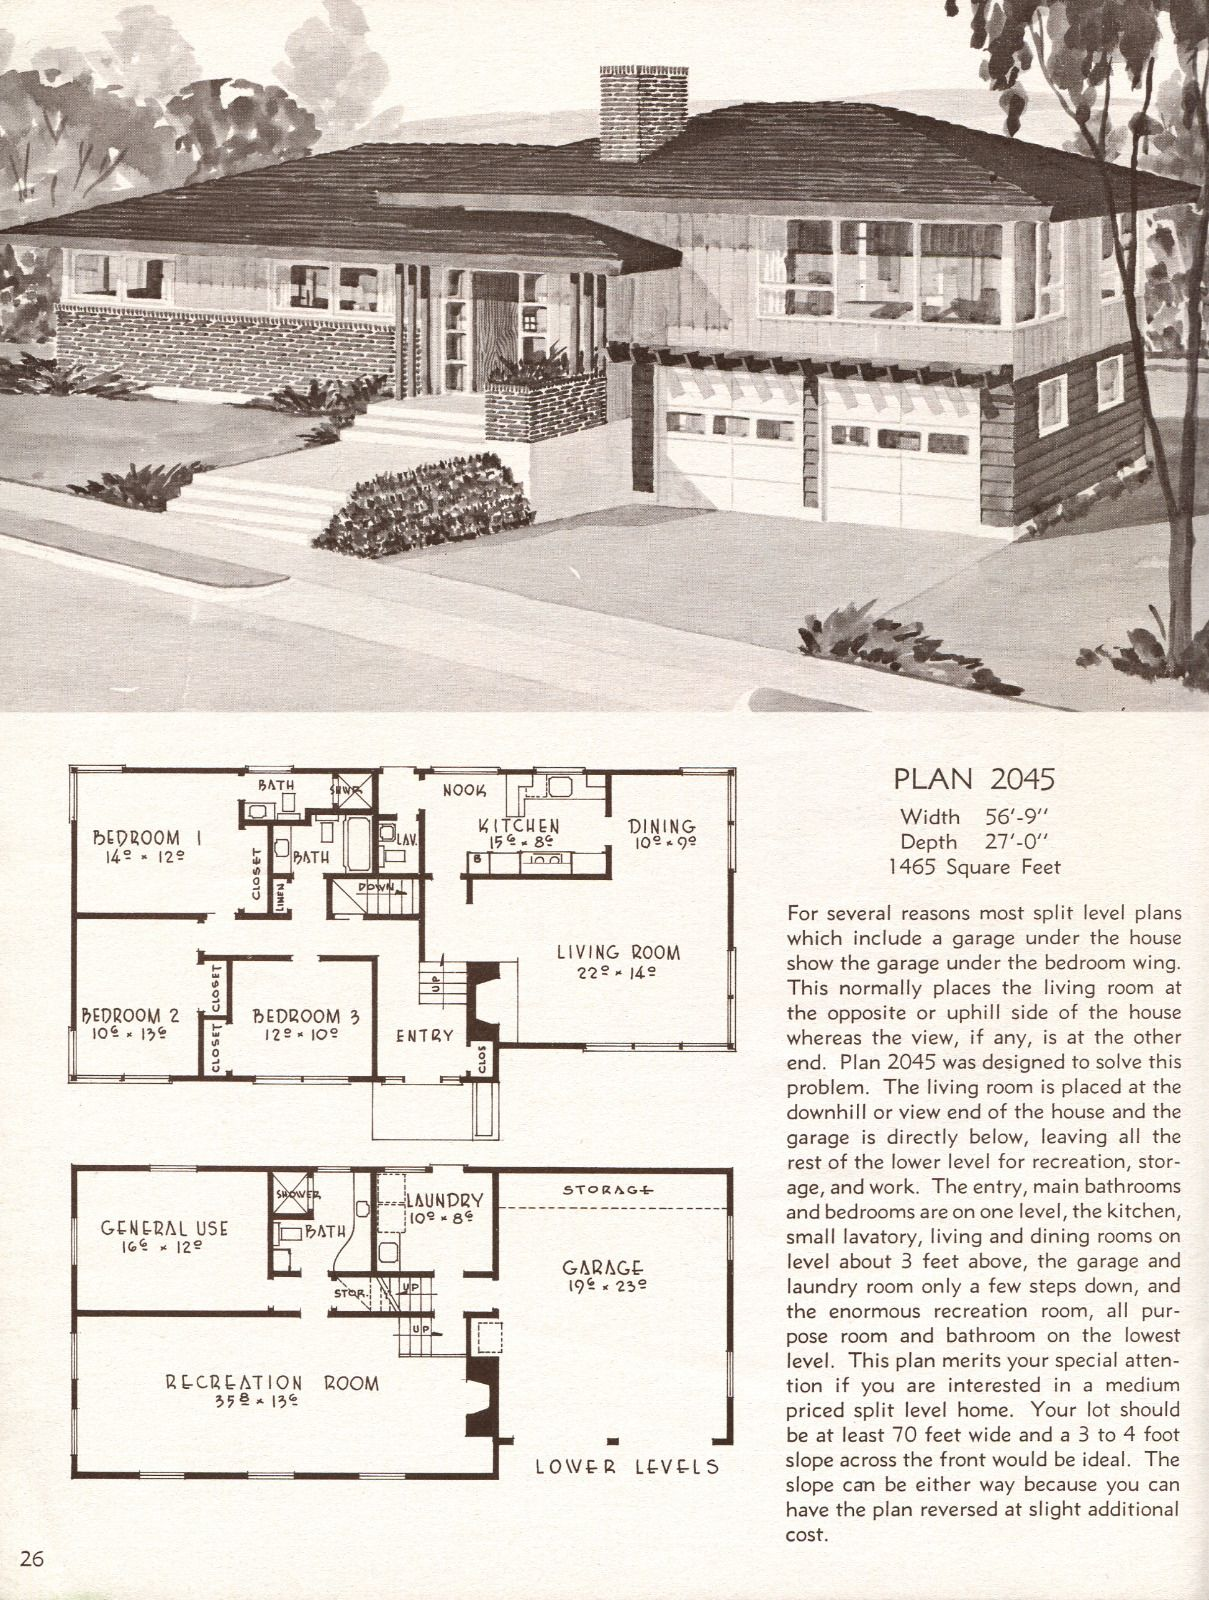 United States 1958 Plan 2045 A Large Split Level Vintage Home Plans 1280x1600 Split Level House Plans Vintage House Plans Floor Plans Ranch